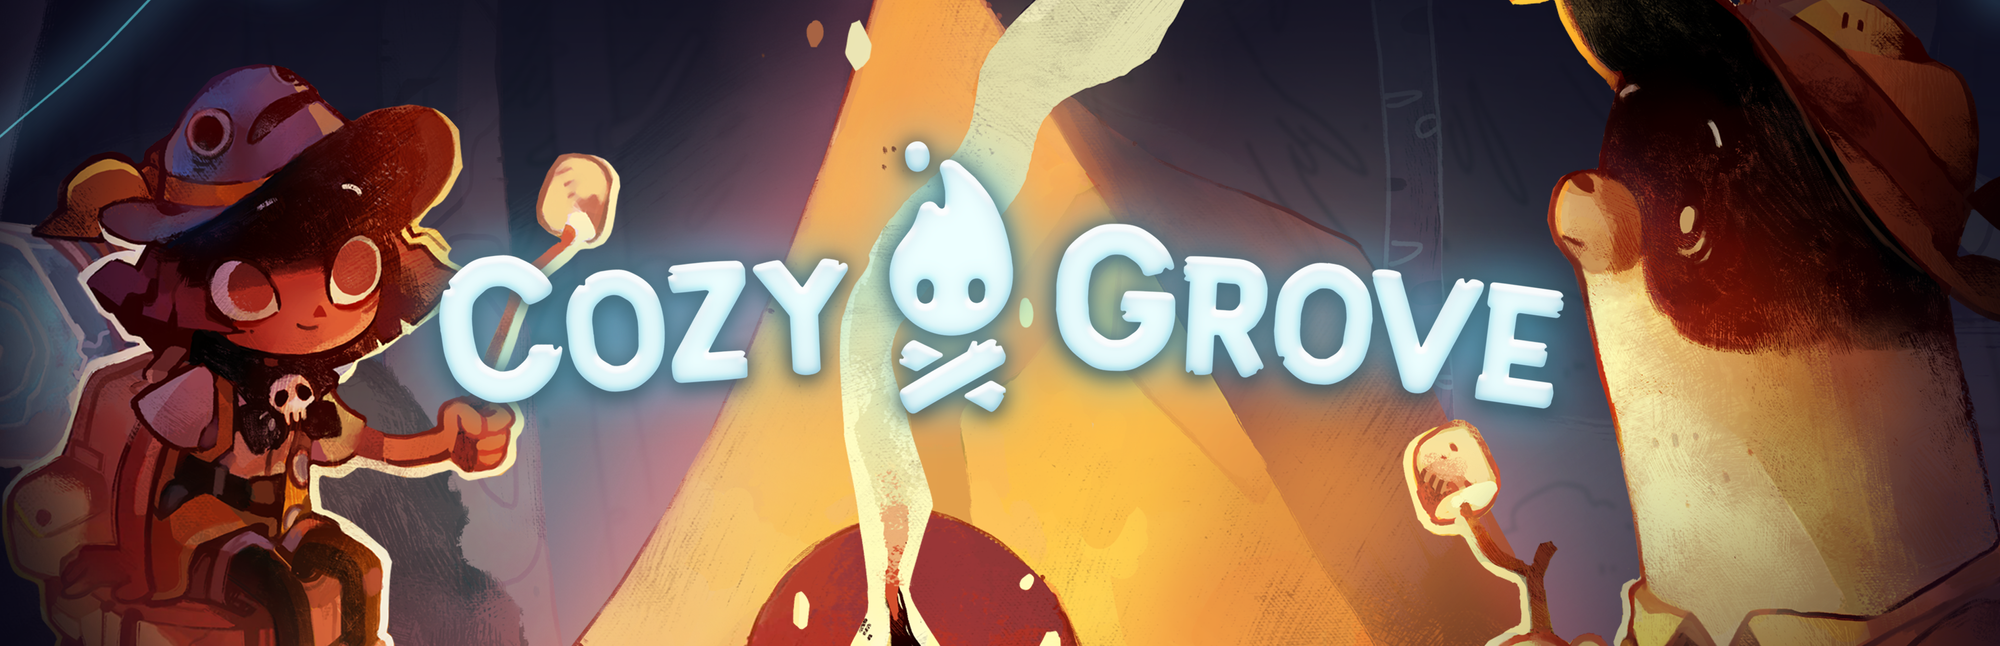 A title card for the game Cozy Grove.